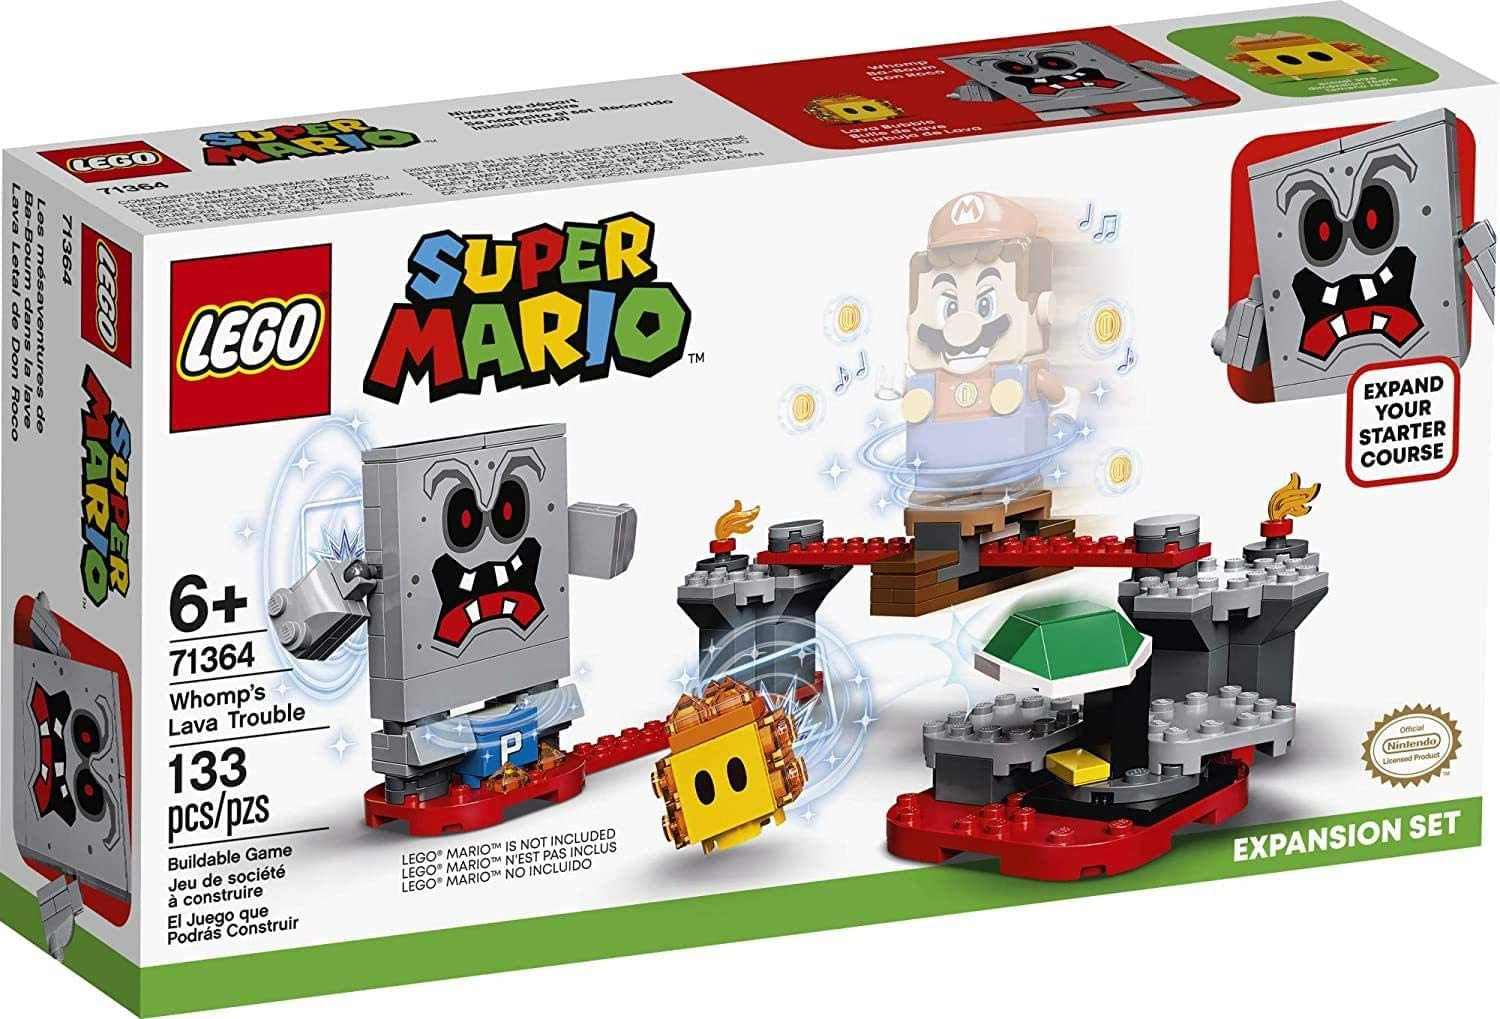 New 2020 LEGO Super Mario Whomp/'s Lava Trouble Expansion Set 71364 Building Kit; Toy for Kids to Enhance Their Super Mario Adventures with Mario Starter Course 133 Pieces 71360